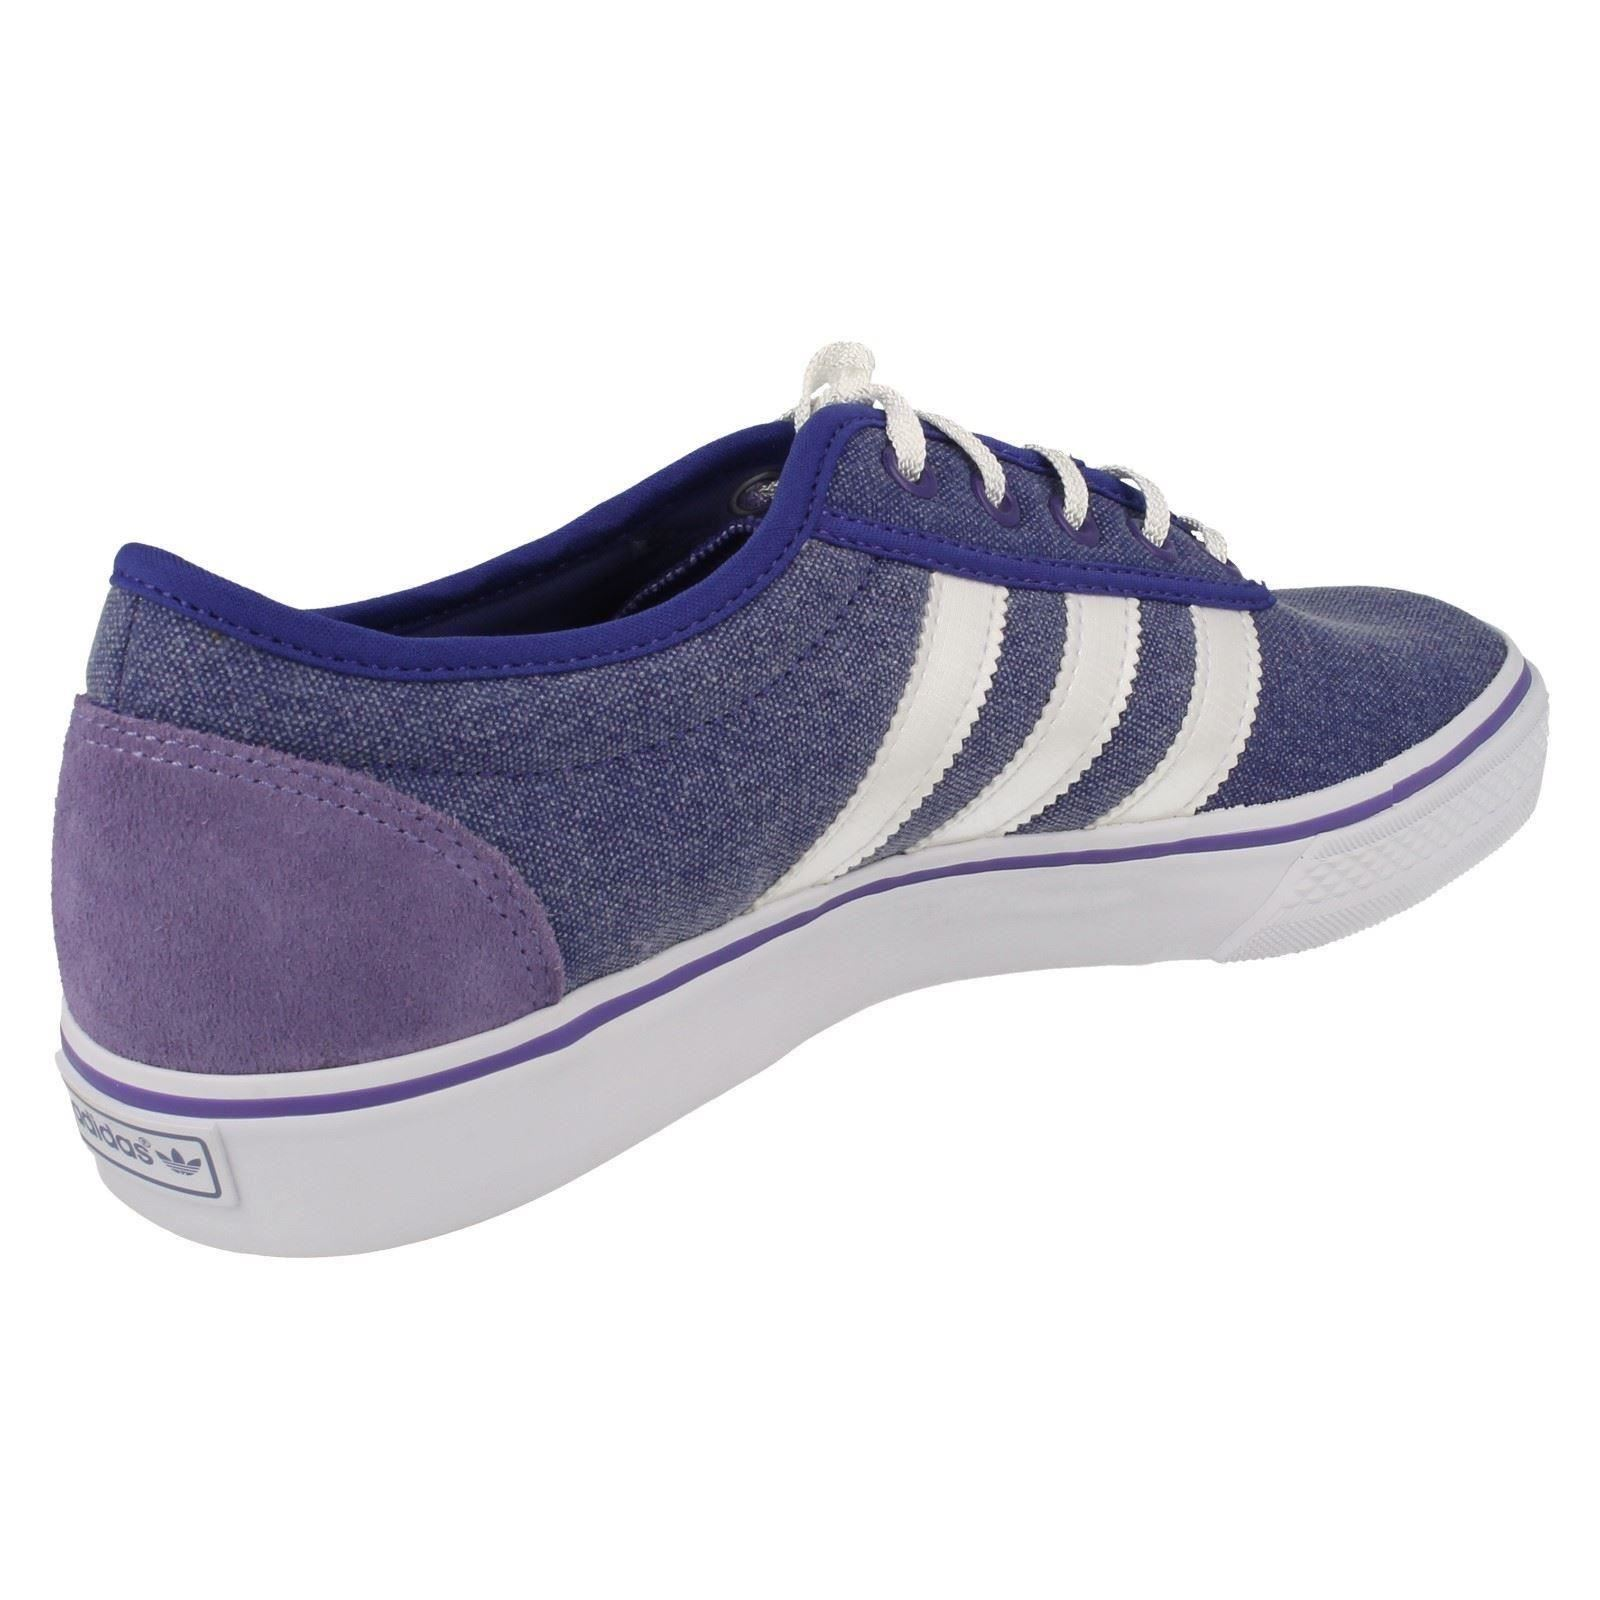 Details about Ladies Adidas Original Trainers Adiease W